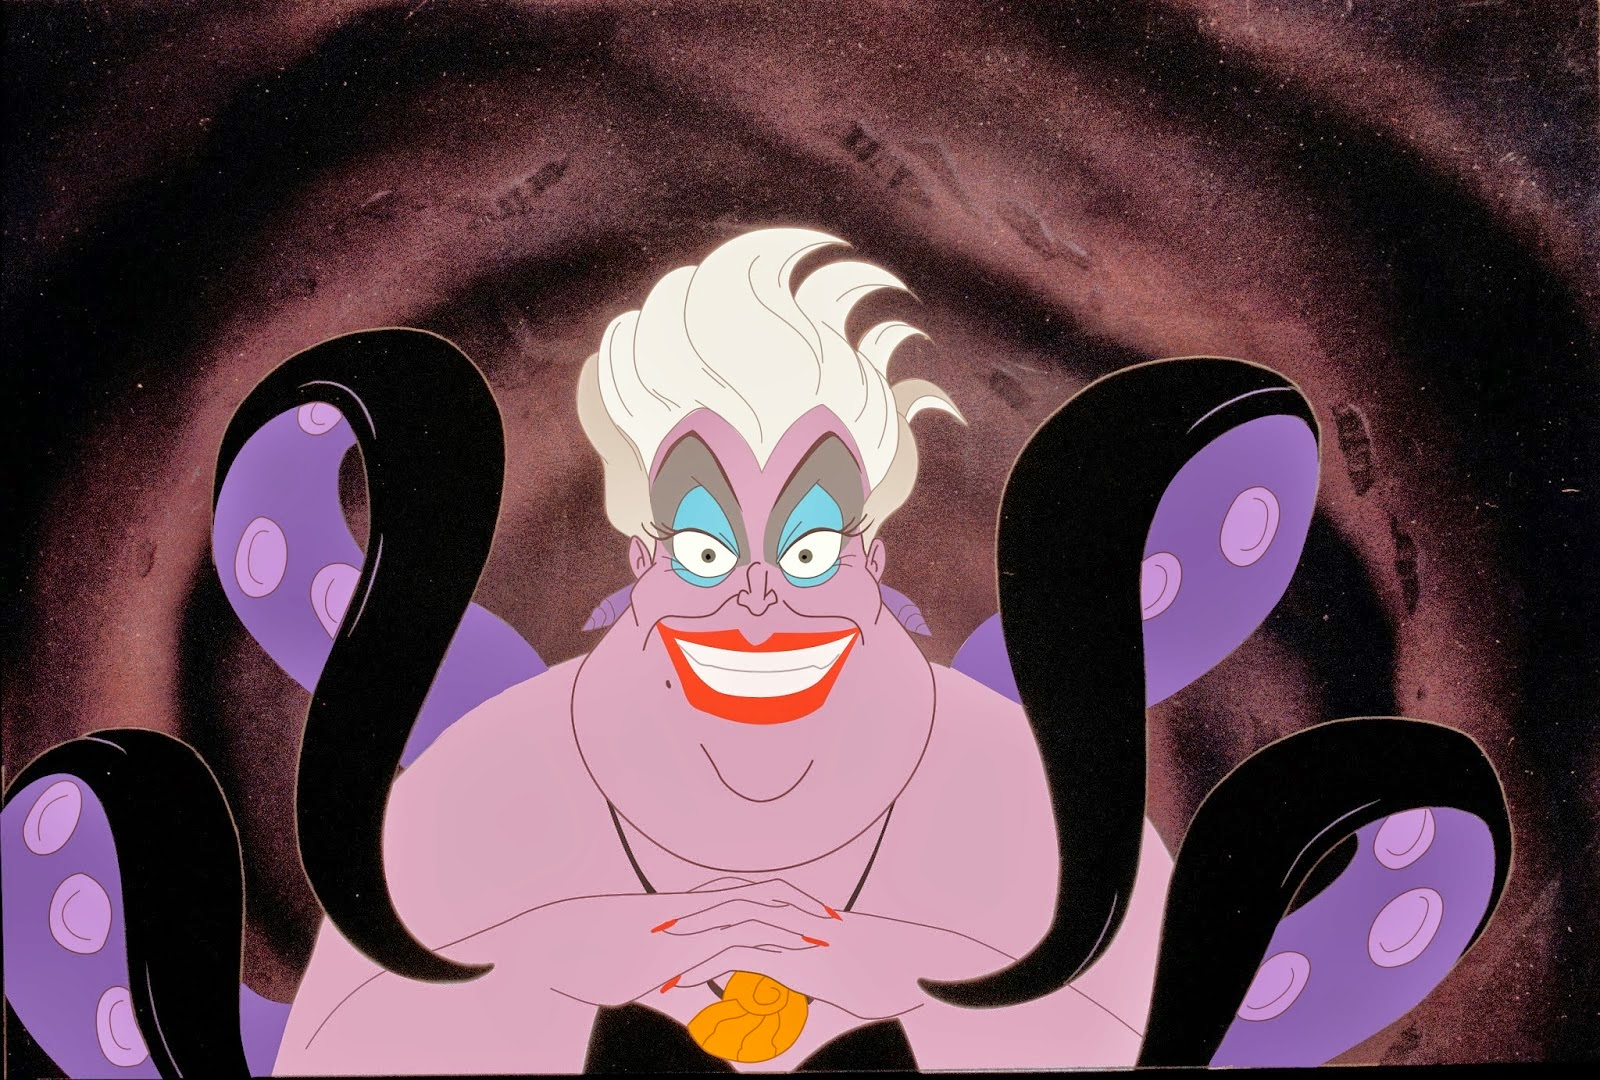 Uncategorized Ursula Mermaid authorquest analyzing the disney villains ursula little mermaid